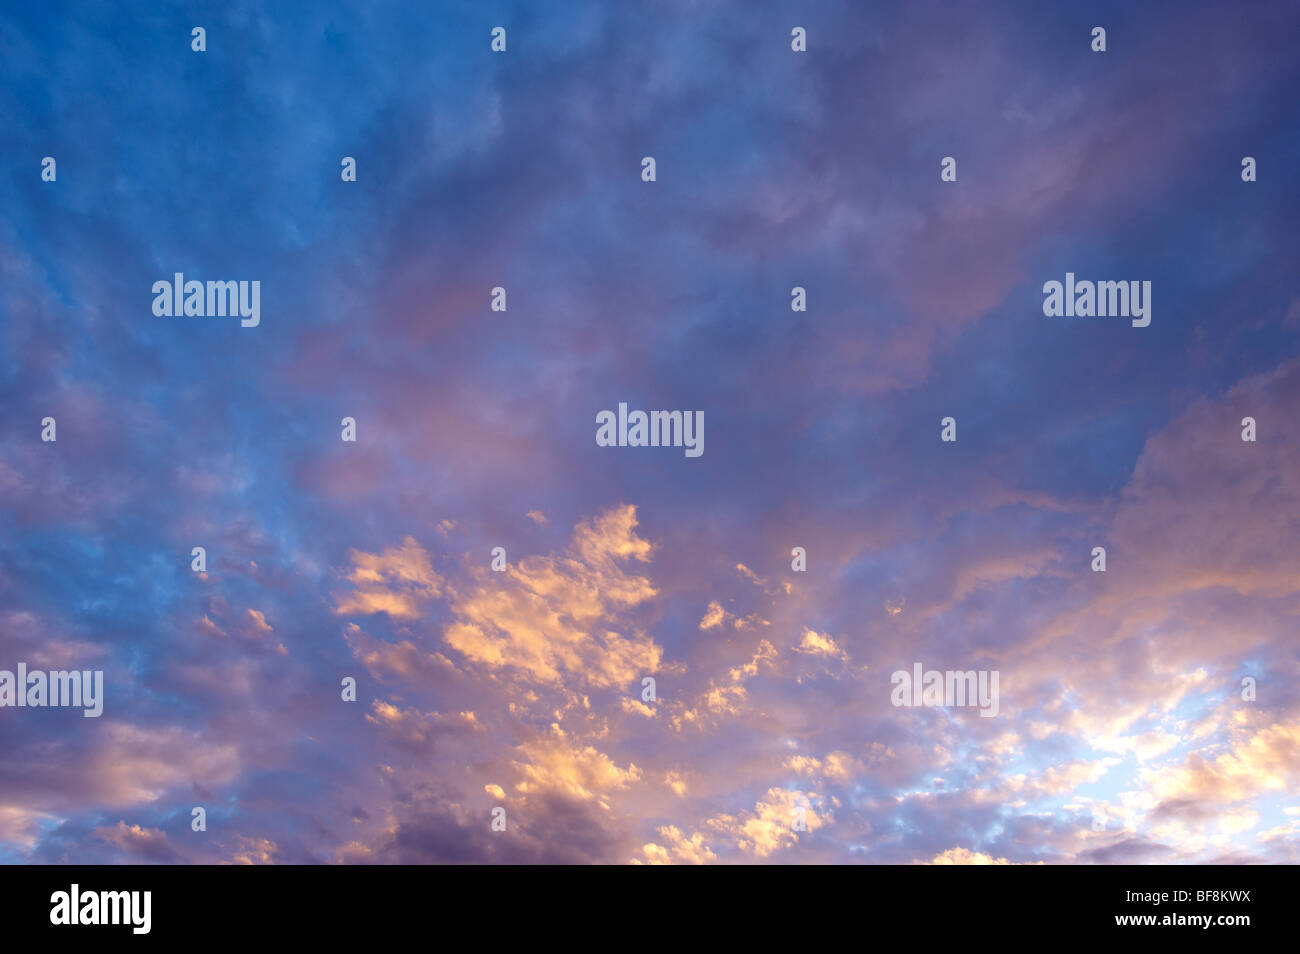 Dusk sky with clouds - Stock Image